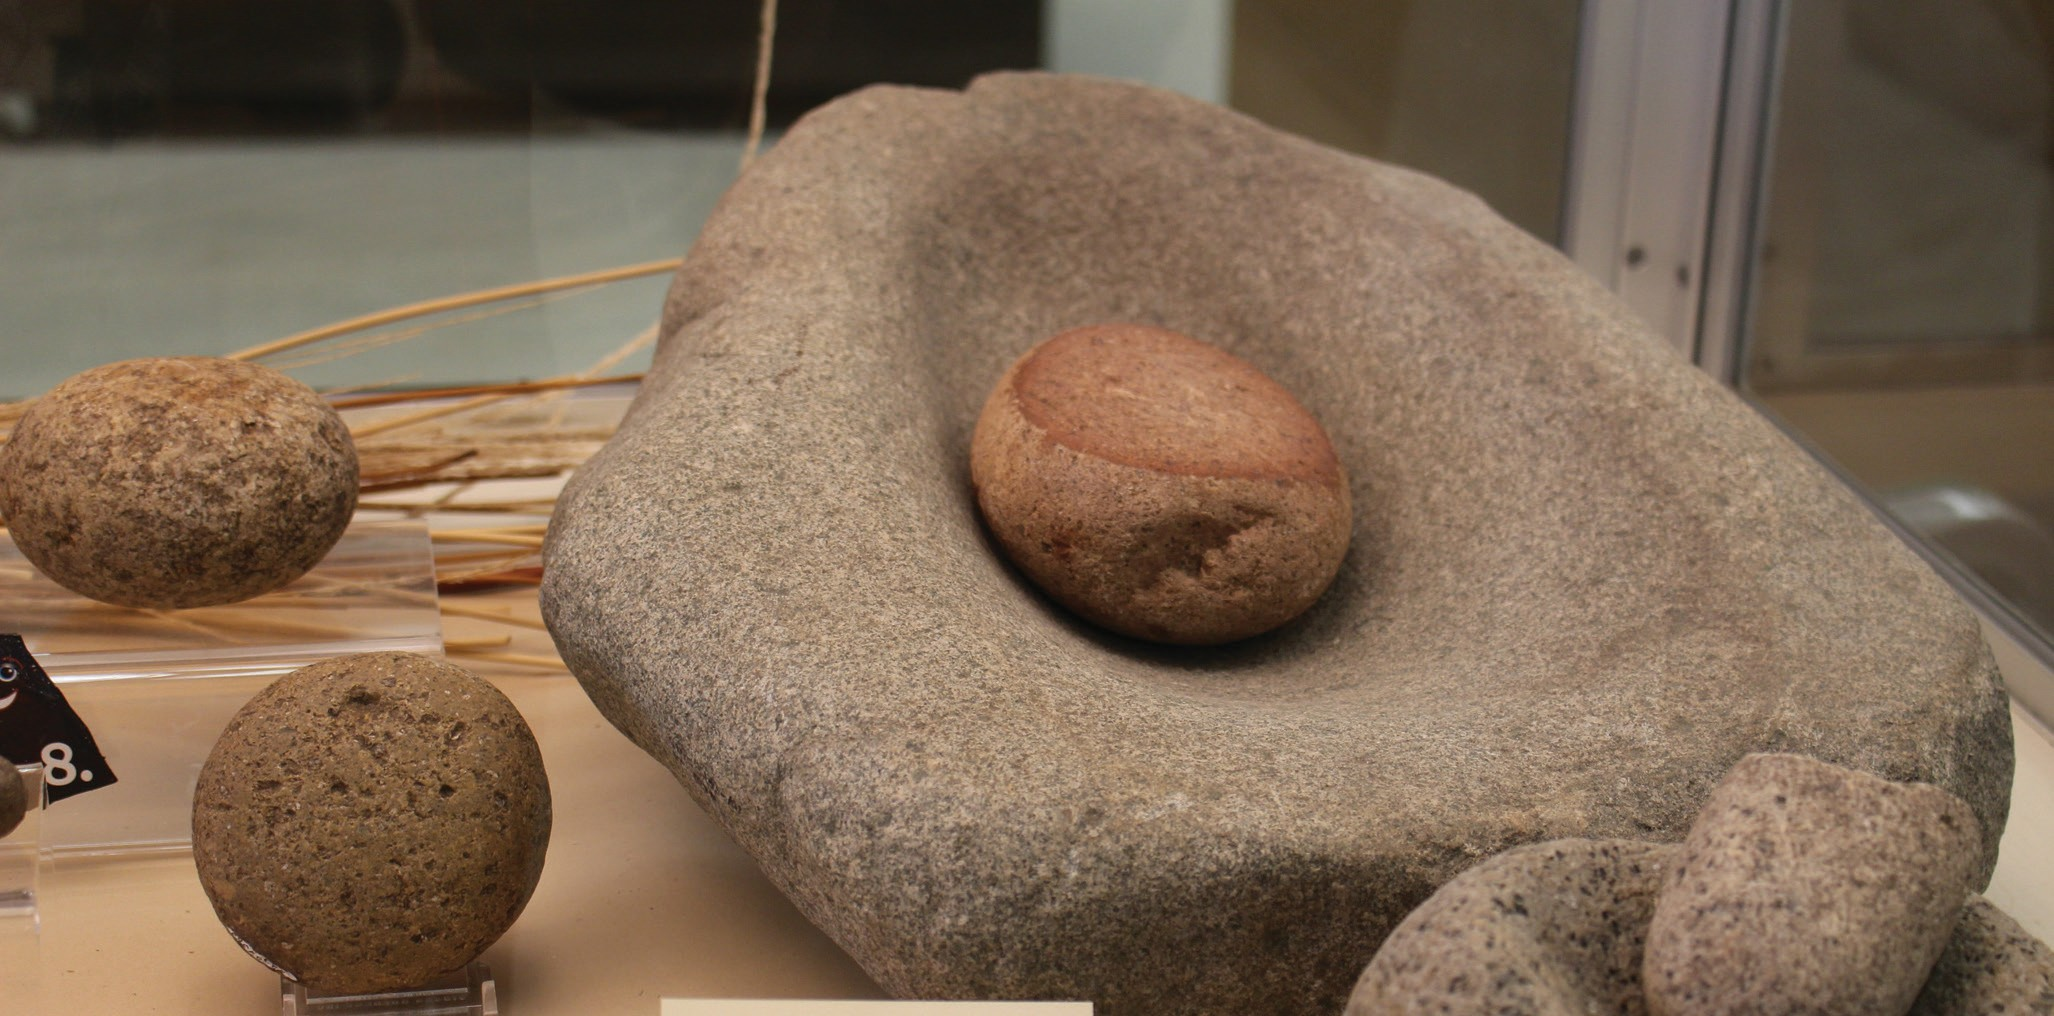 A metate or grinding station at the San Diego Archeological Center.